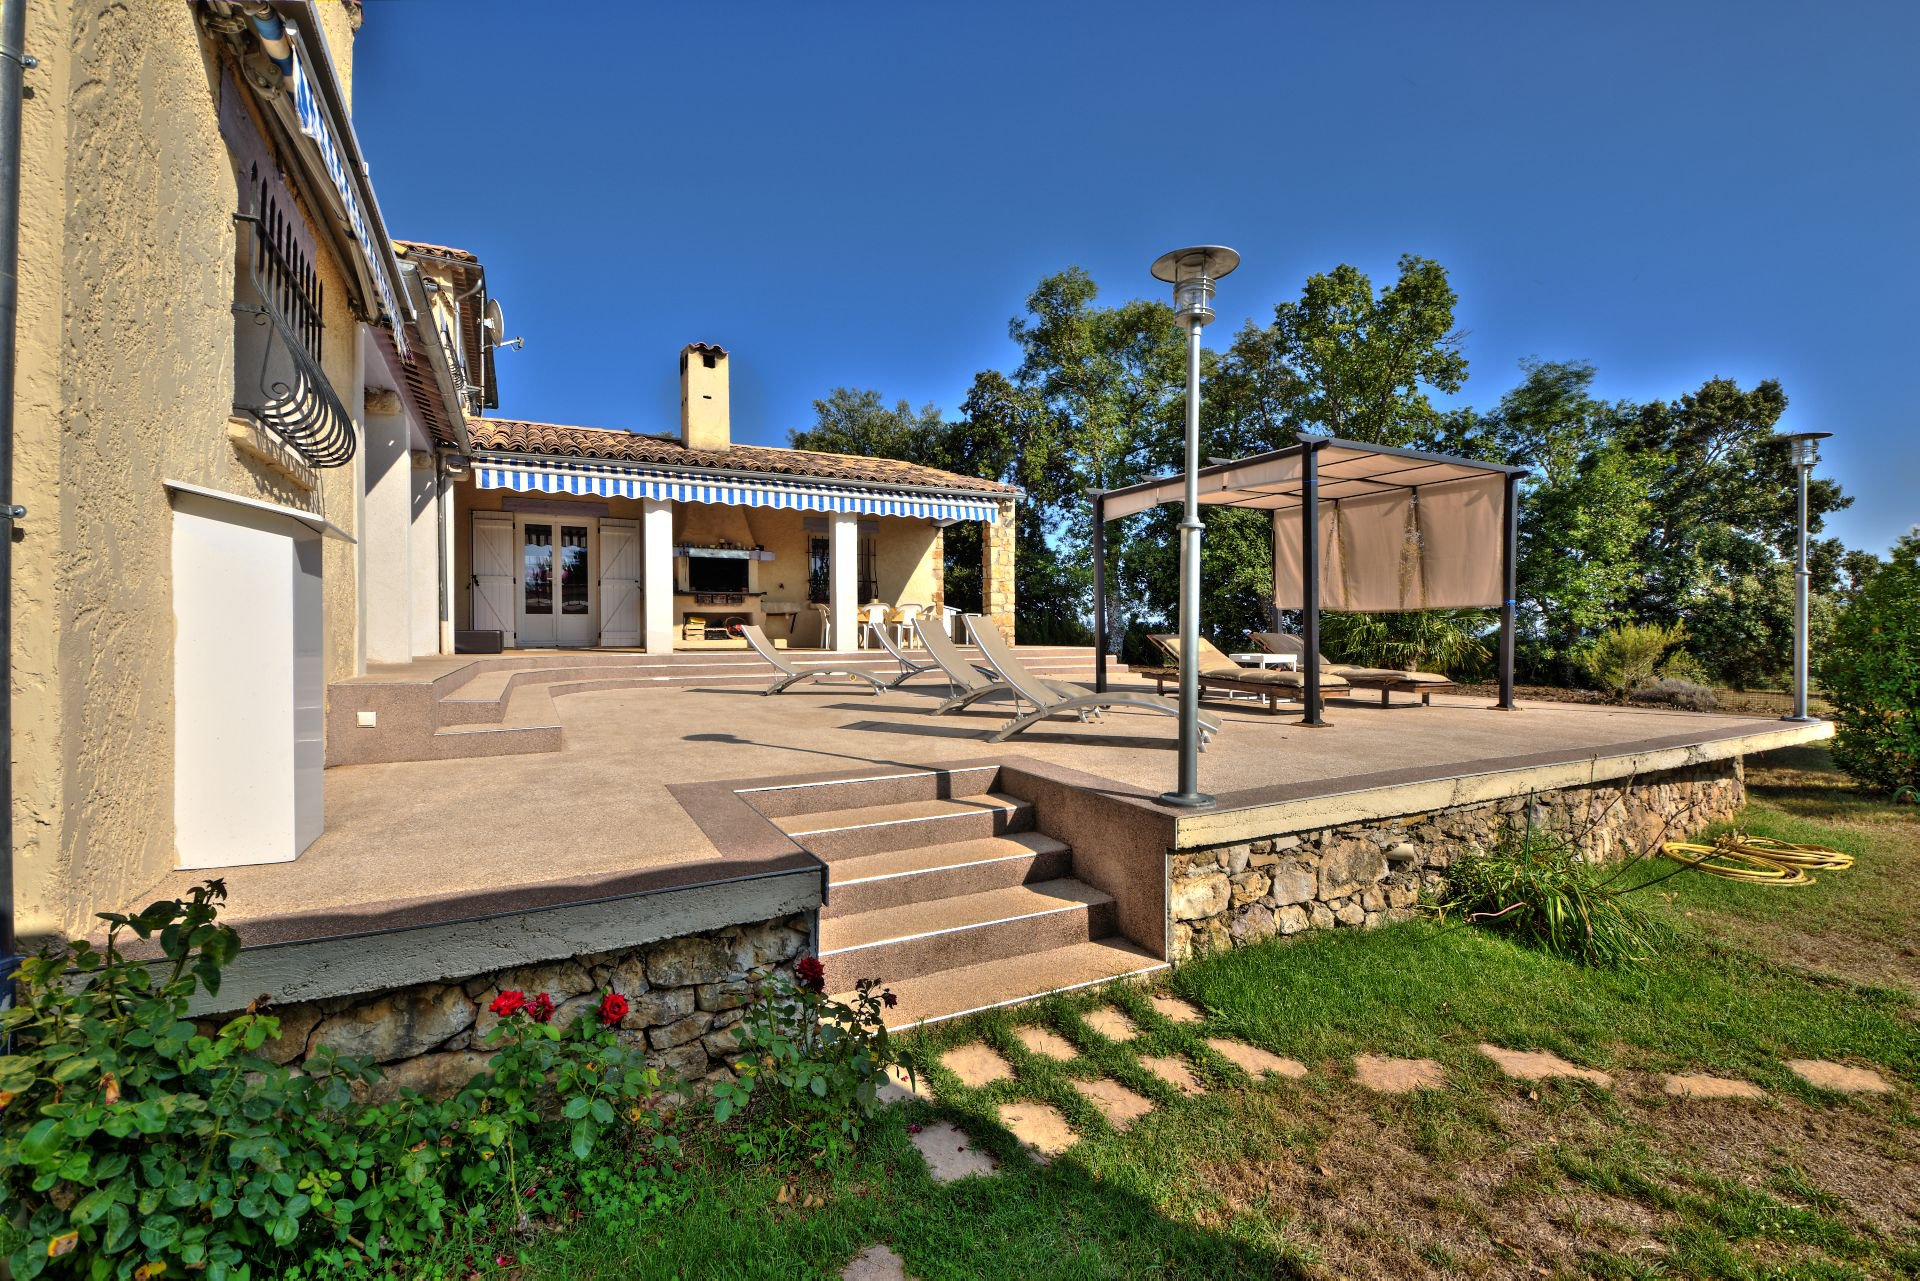 Terrace House 200 m², 4 bedrooms, outbuilding on 8000 m² agricultural area, Ampus, Var, Provence, Paca